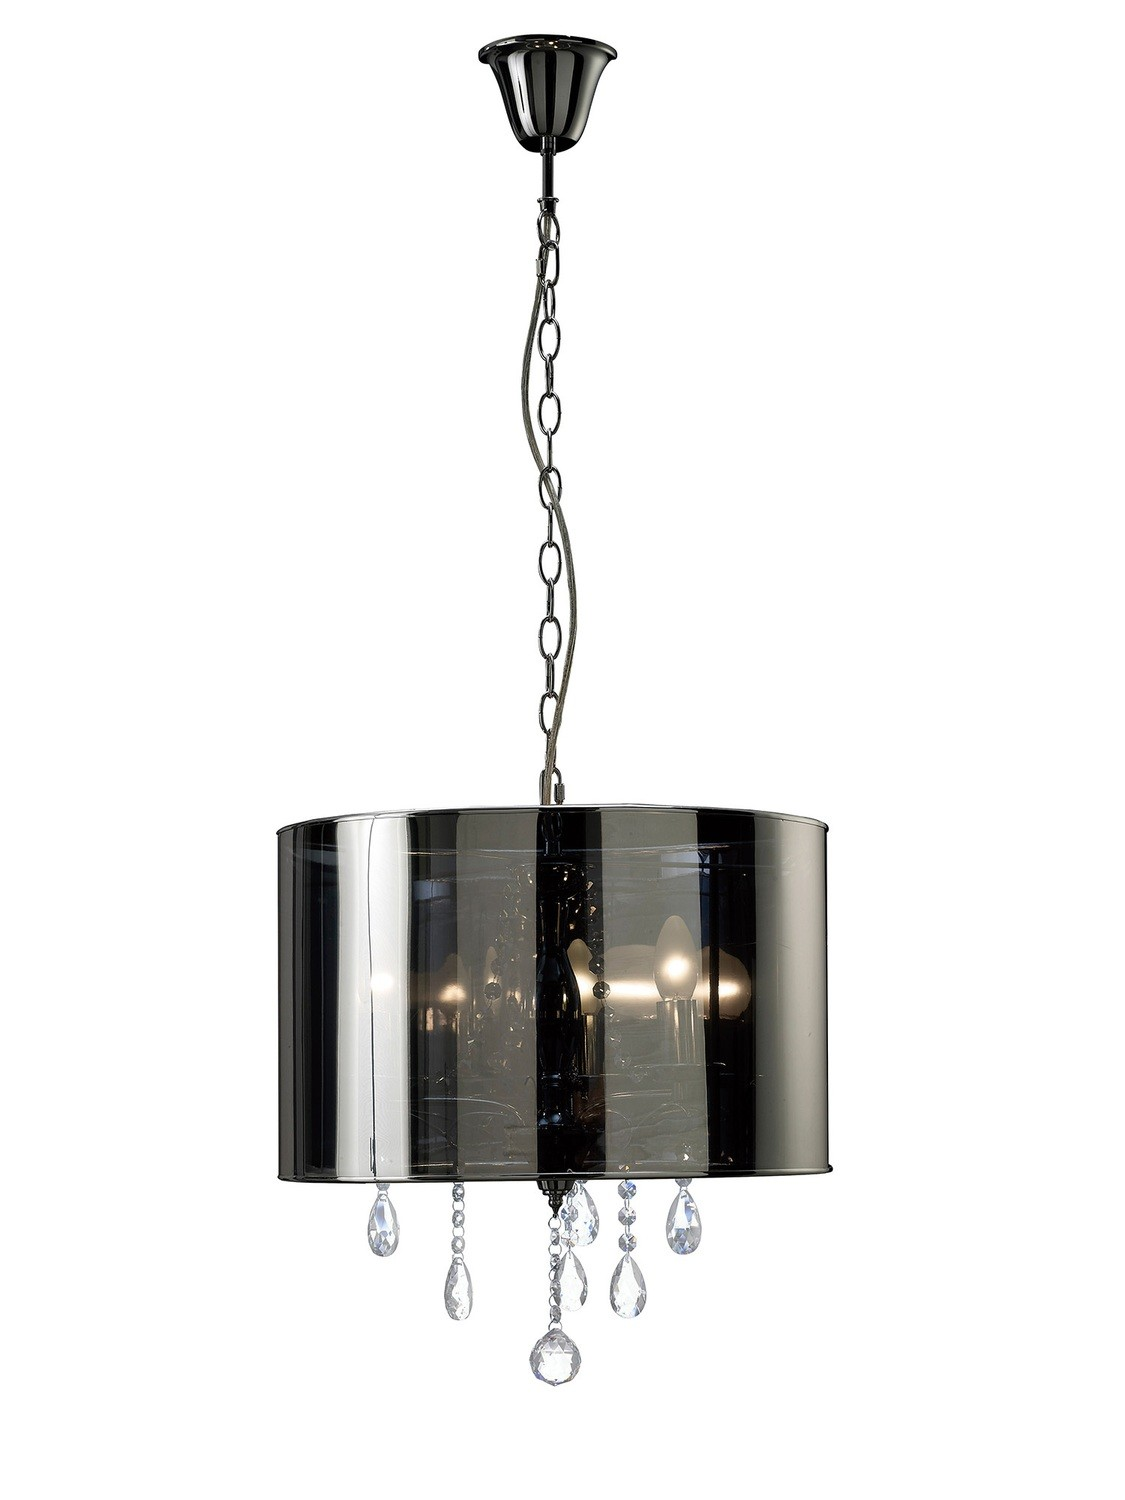 Trace Pendant With Chrome Shade 3xE14 Light Polished Chrome/PVC /Crystal